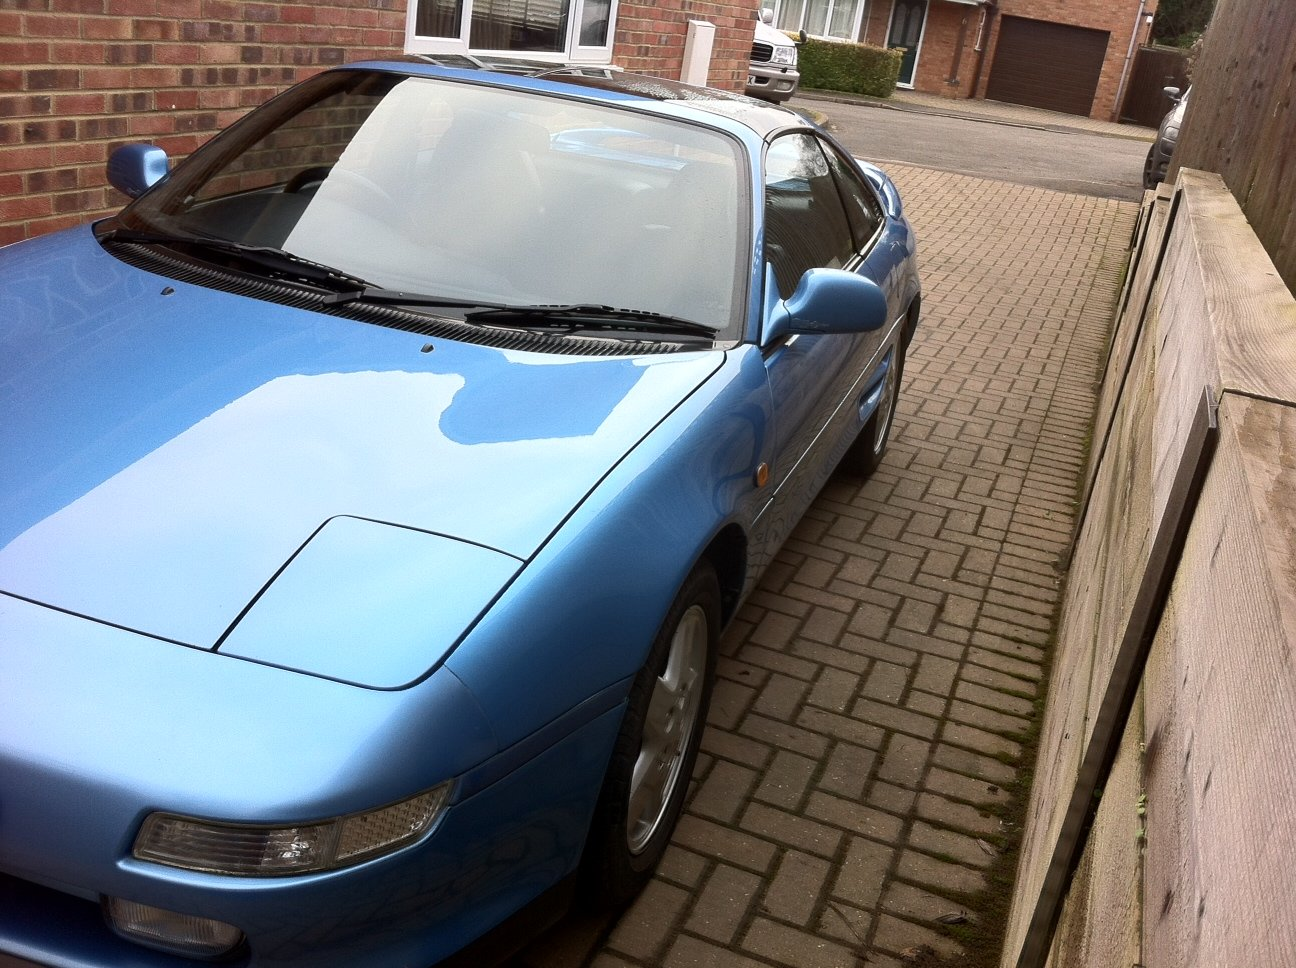 1992 MR2 gt t-bar. Leather. air-con. 79k miles. For Sale (picture 4 of 5)